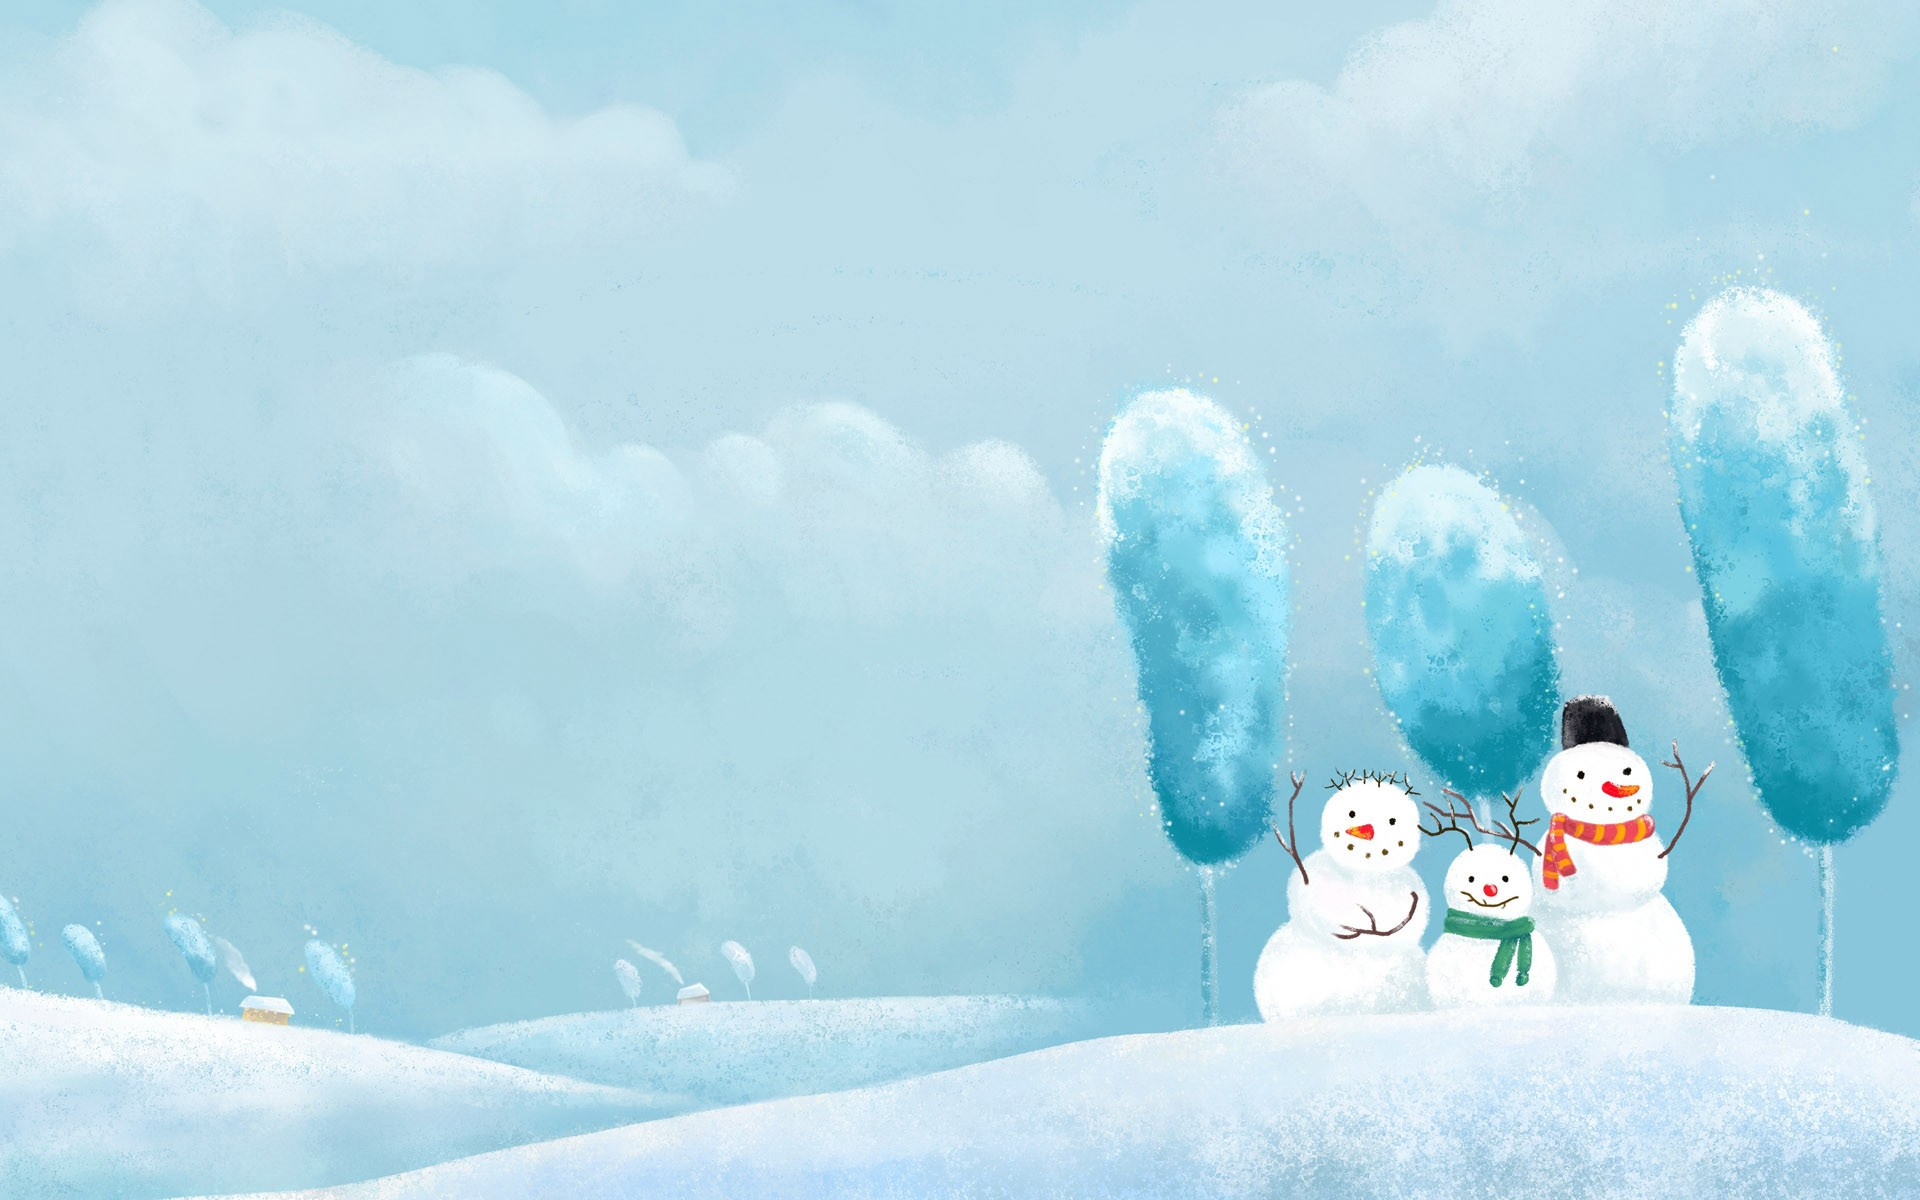 Winter Snowman Screensavers wallpaper wallpaper hd background 1920x1200